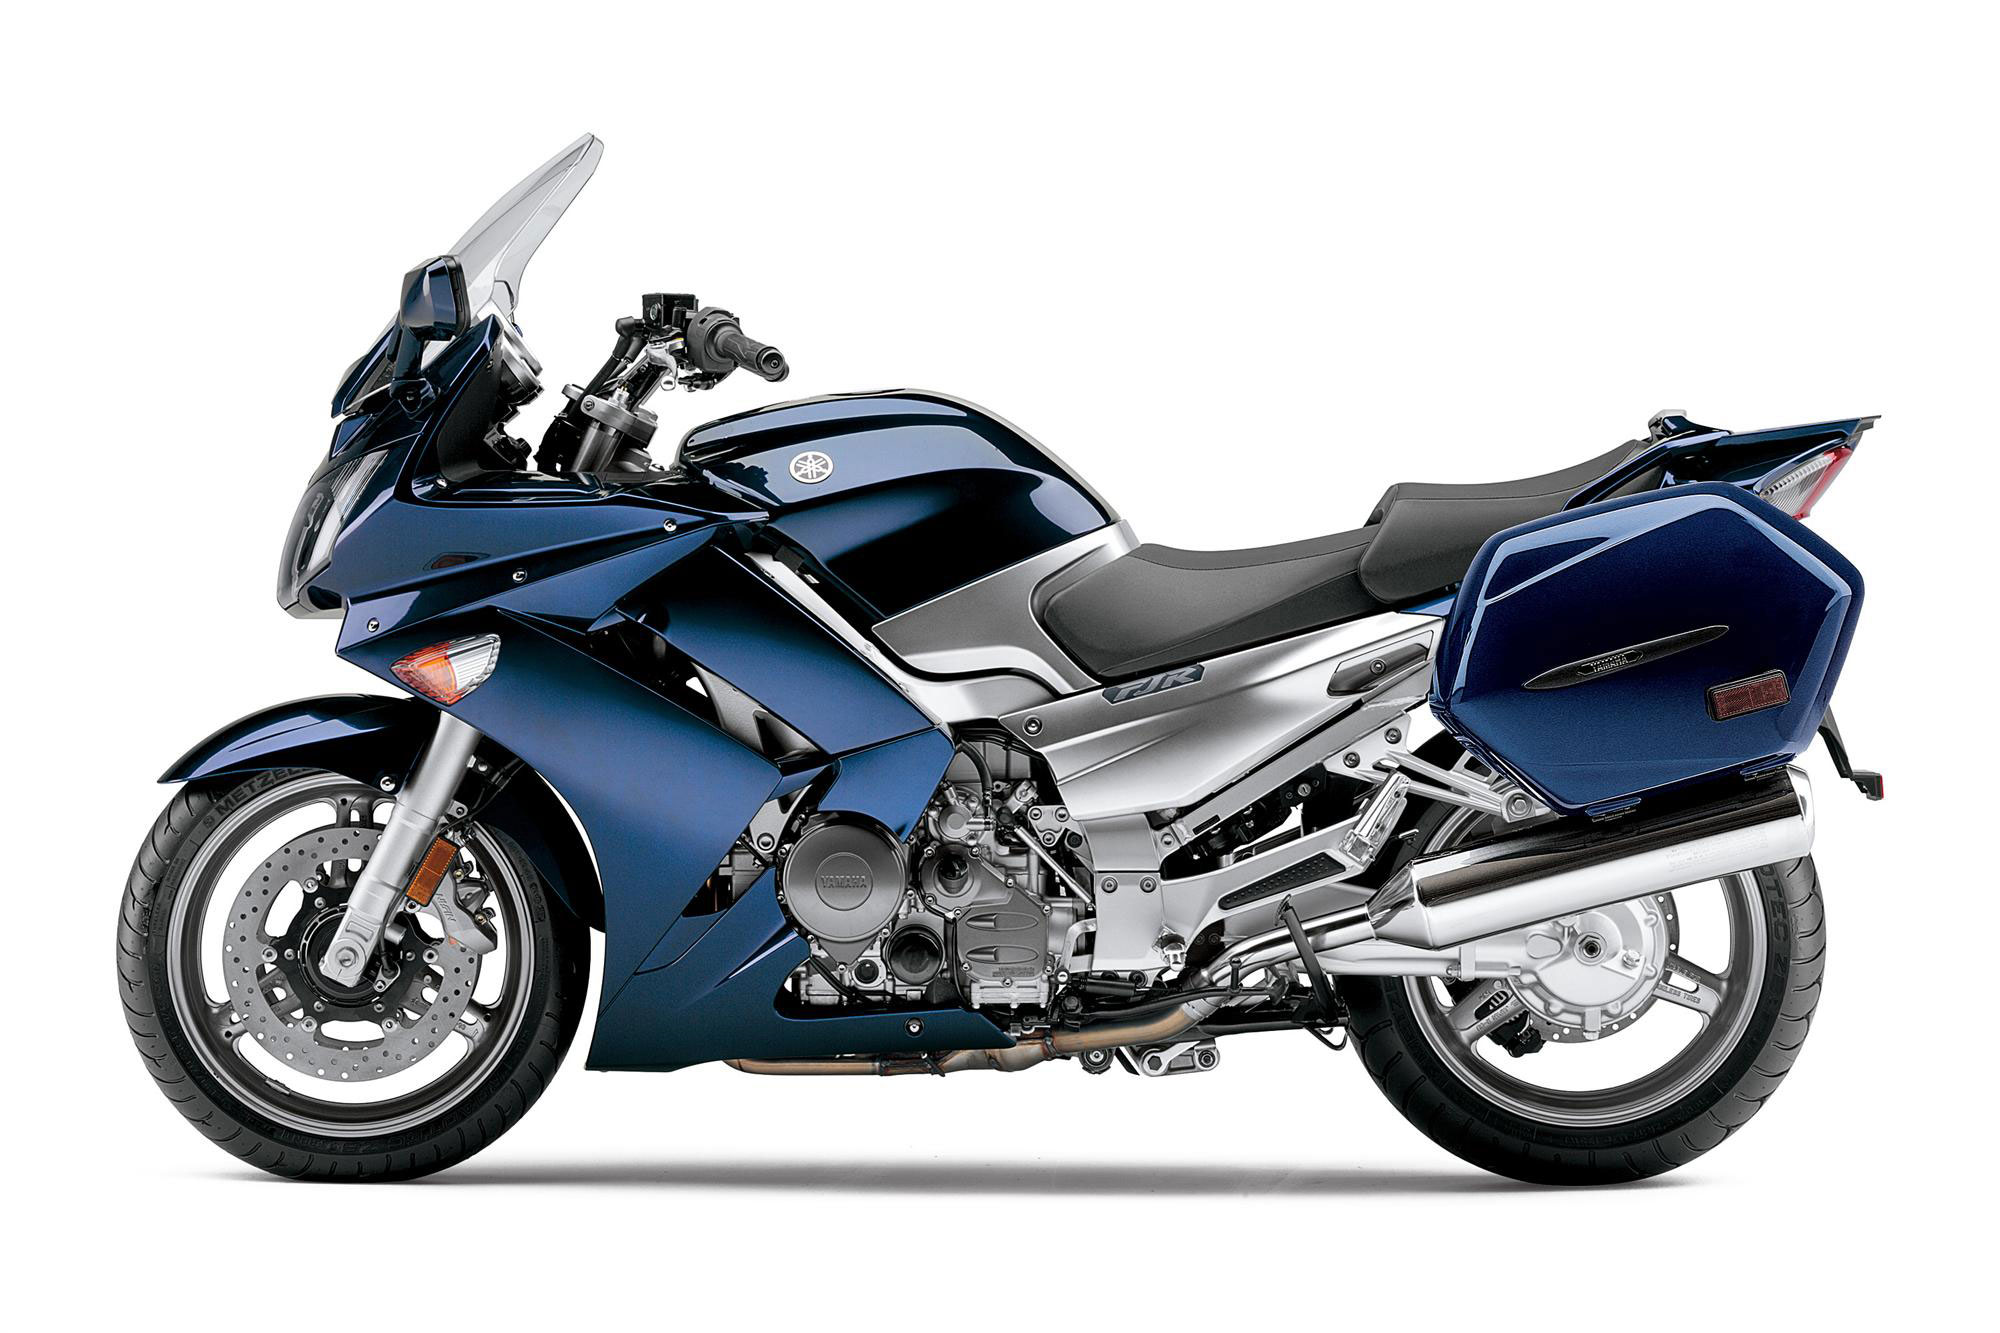 2012 Yamaha FJR1300 Review